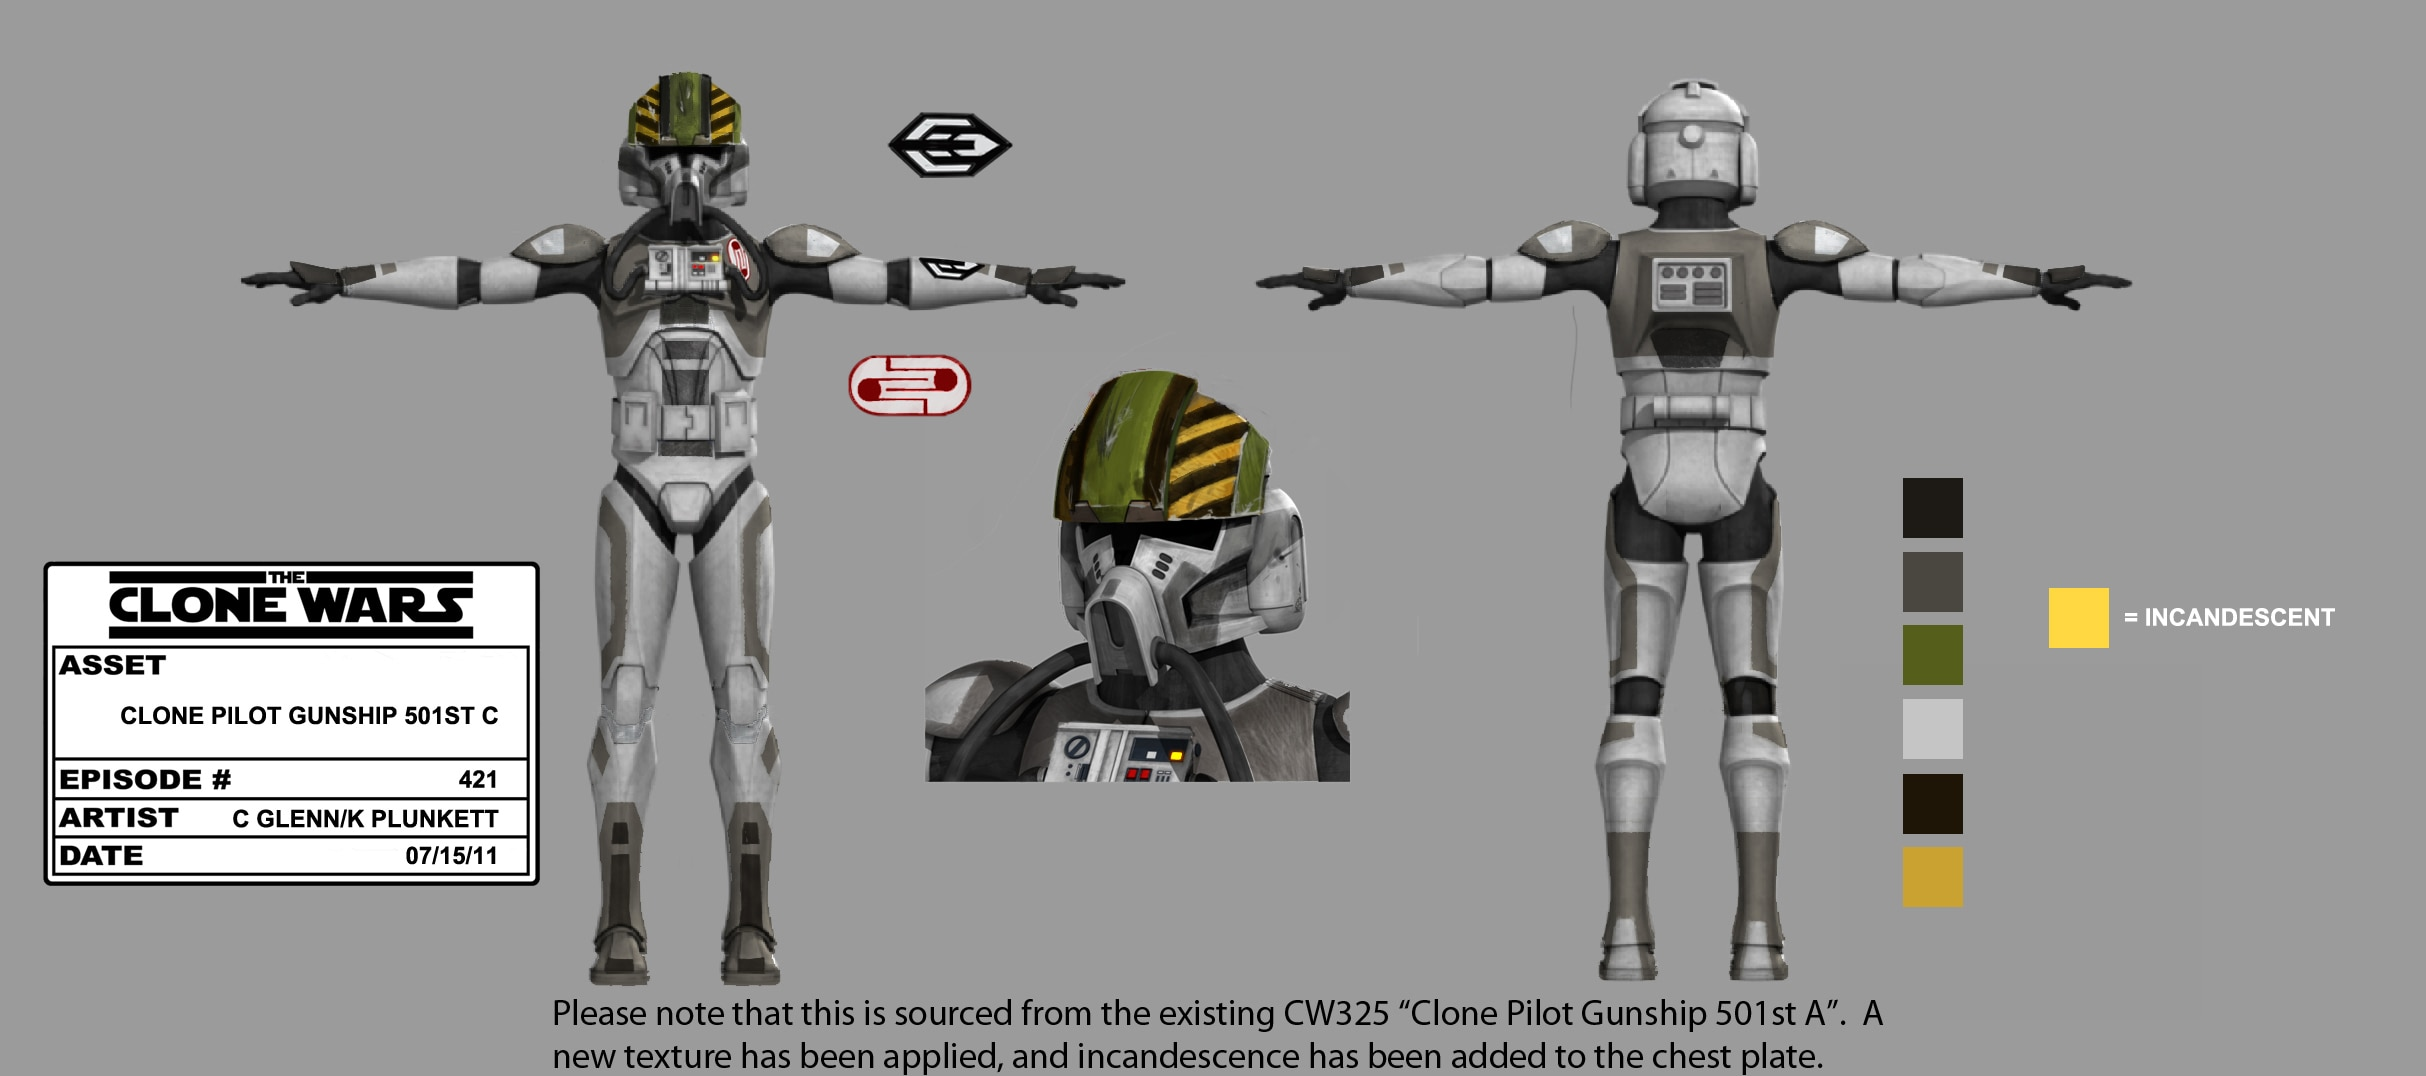 clone wars rebels concept artfrom paper to animation